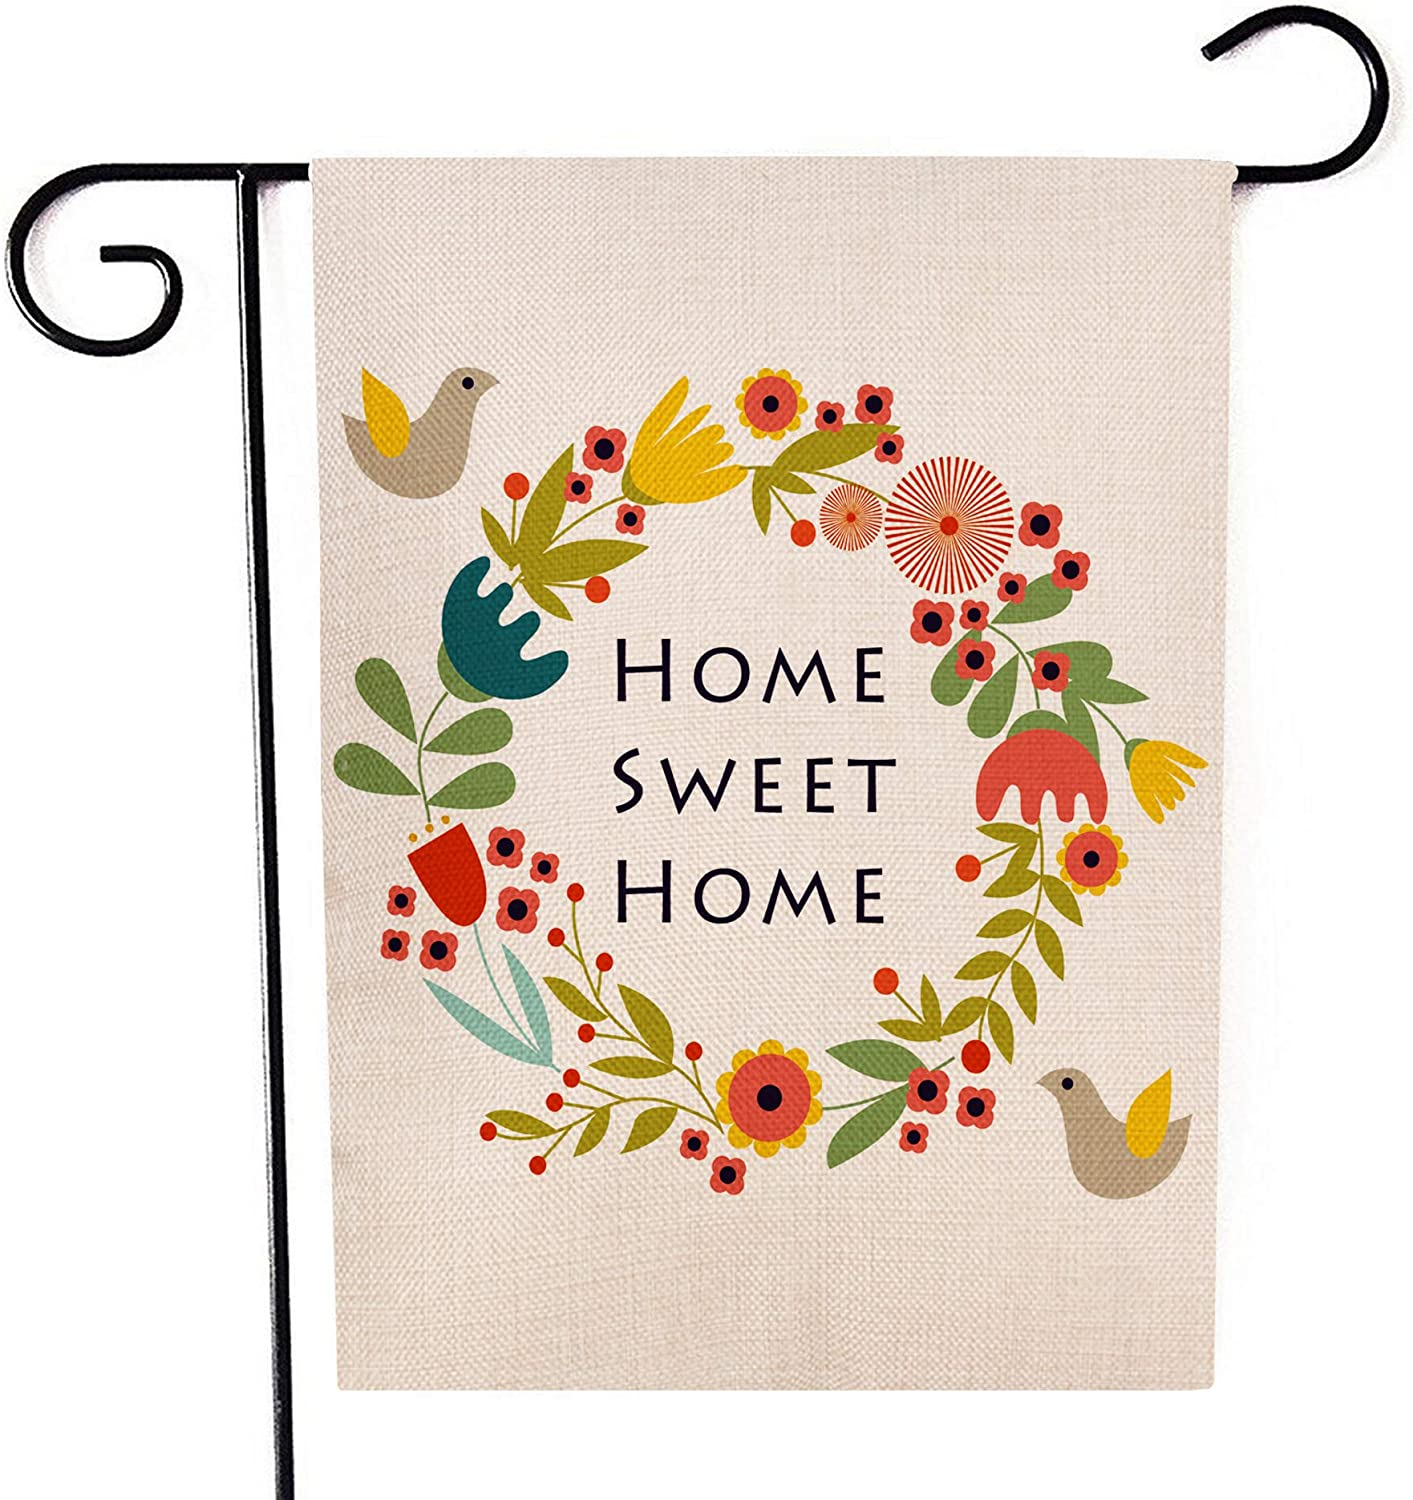 Ogiselestyle Home Los Angeles Mall Sweet Garden Flag Double Bird Decor All stores are sold Sided